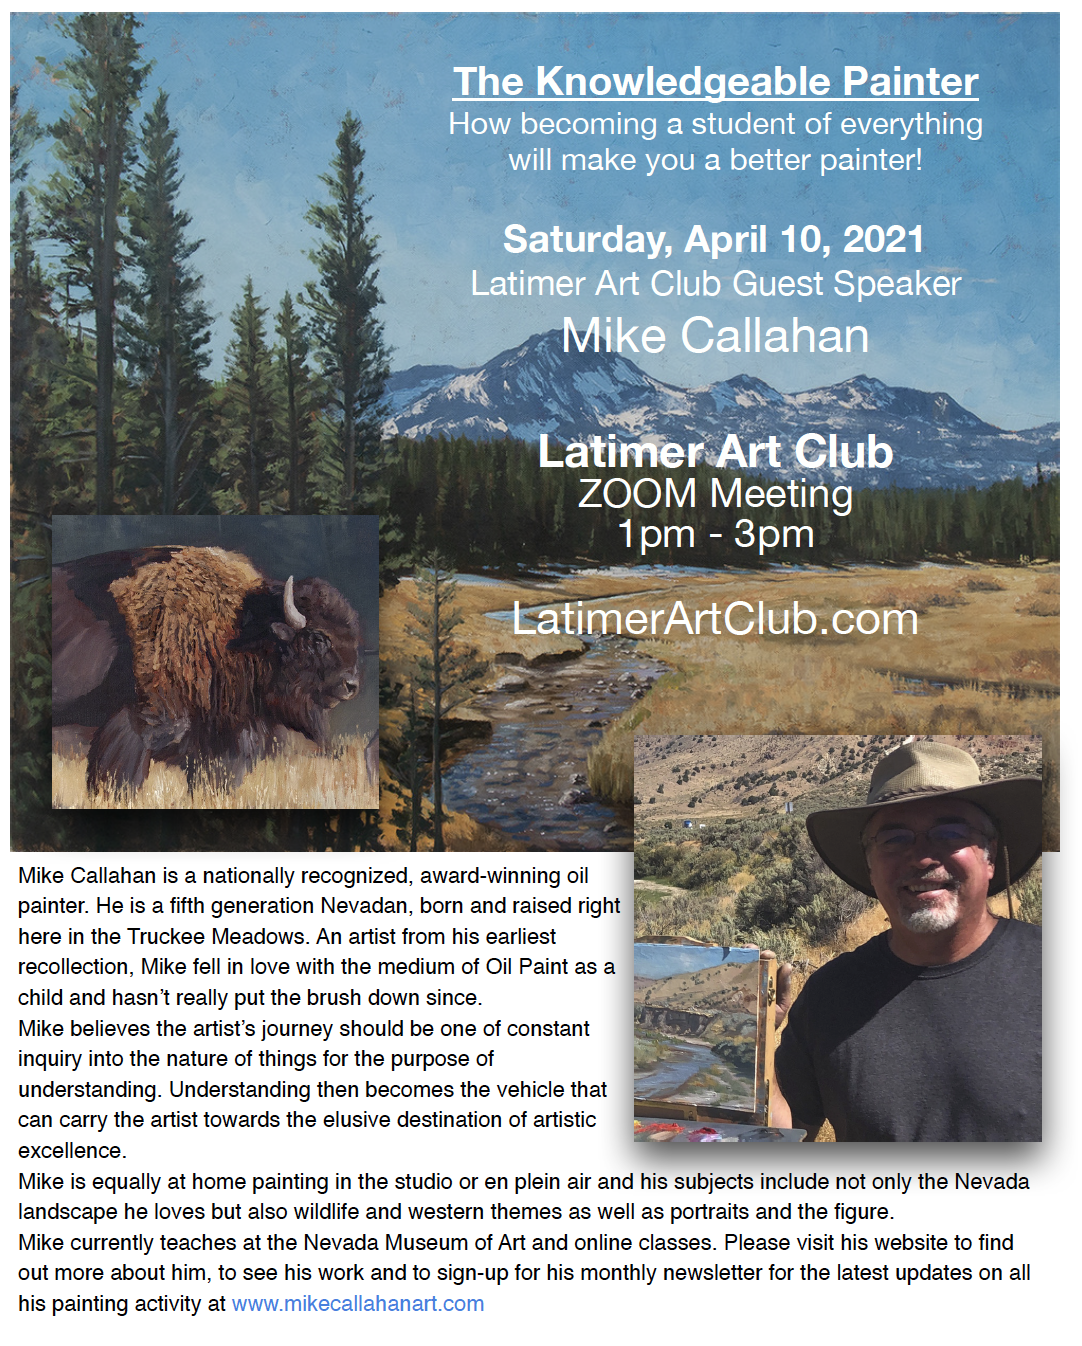 mike callahan speaker for april 2021 meeting